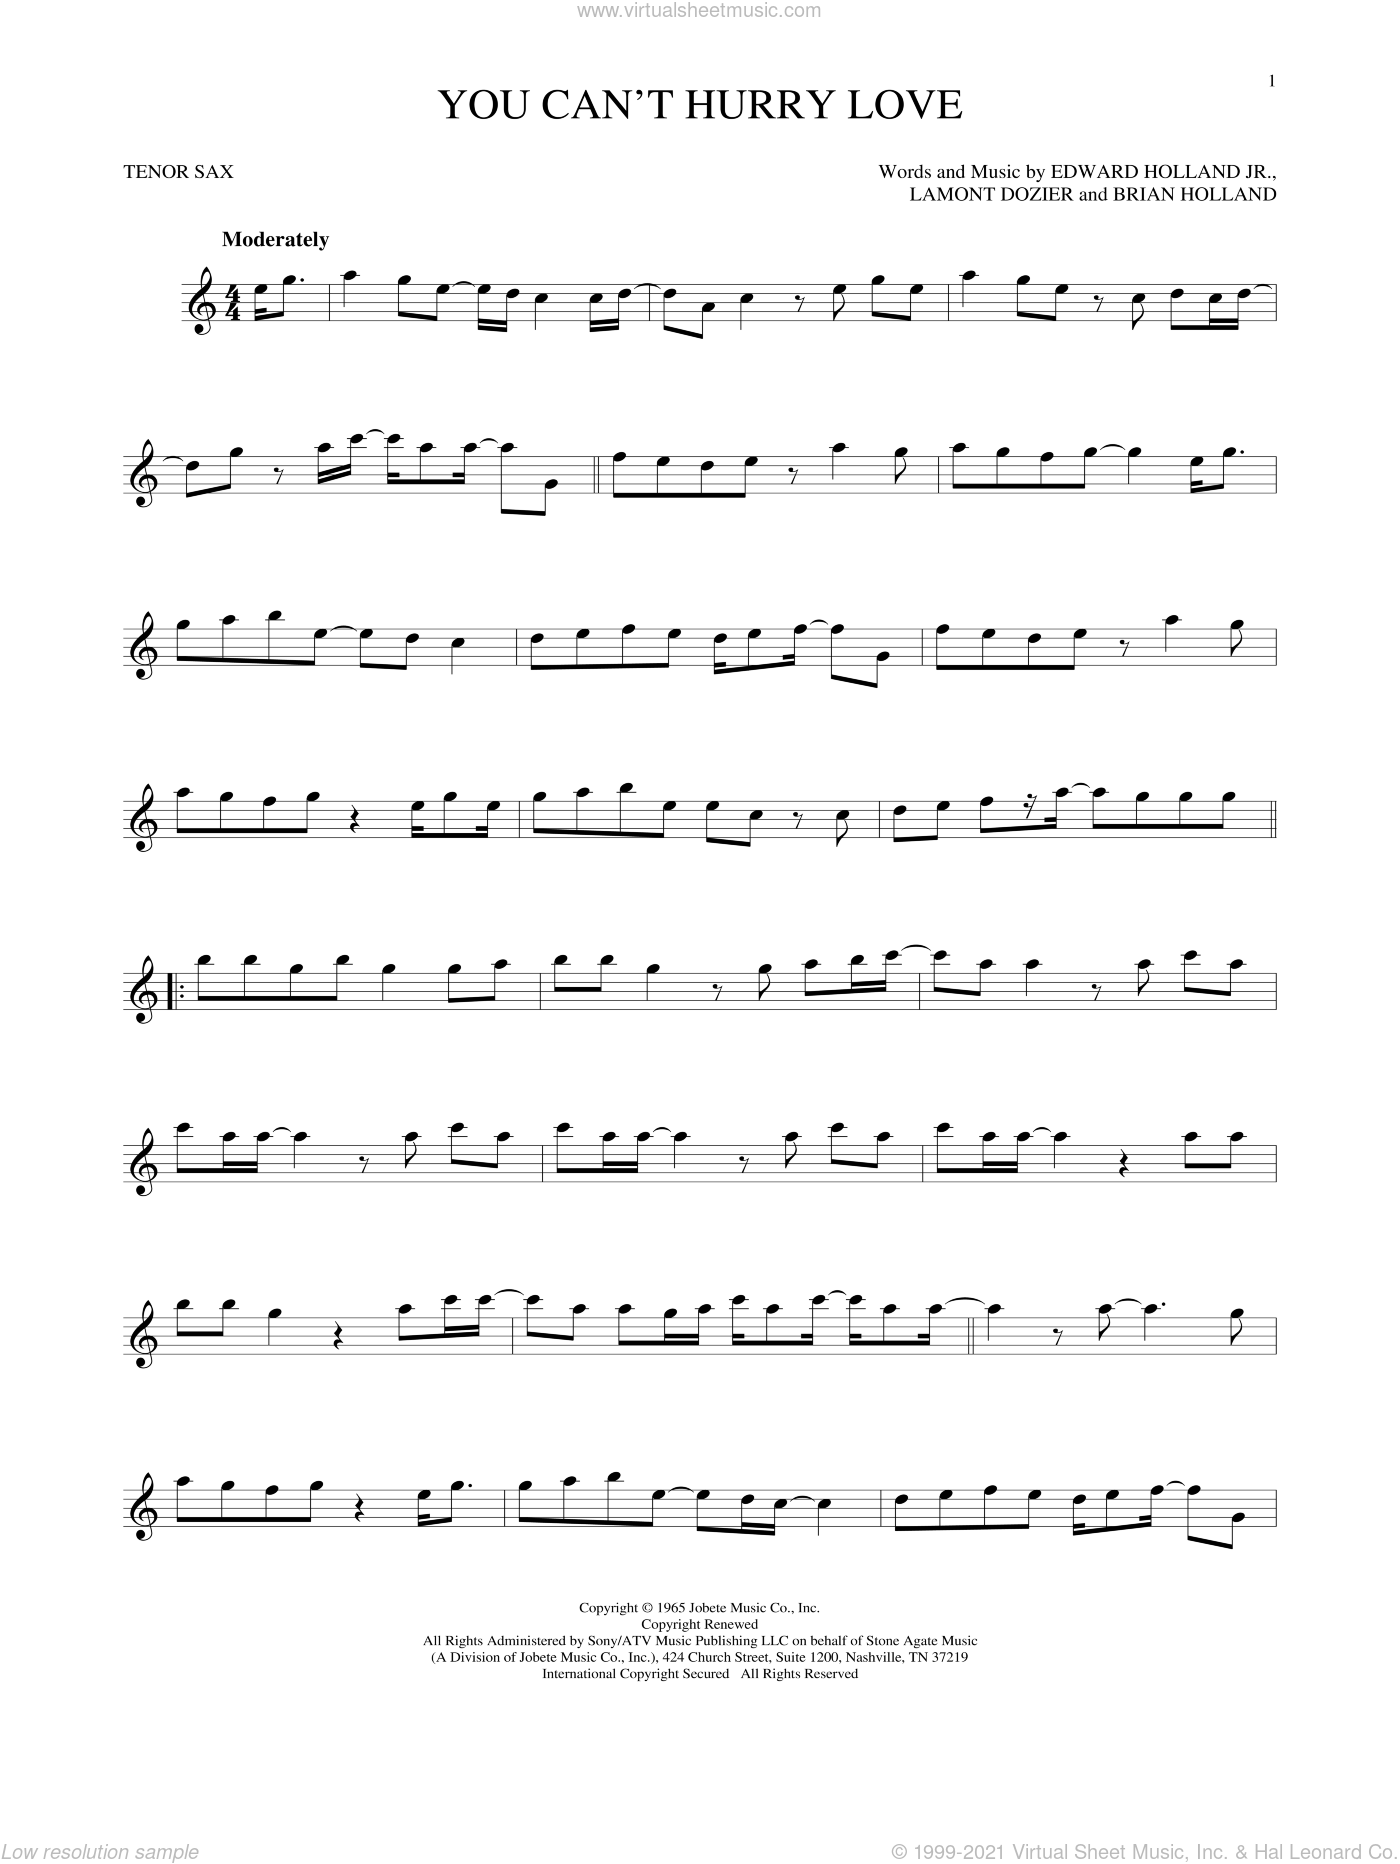 You Can't Hurry Love sheet music for tenor saxophone solo by The Supremes, Phil Collins, Brian Holland, Edward Holland Jr. and Lamont Dozier, intermediate skill level